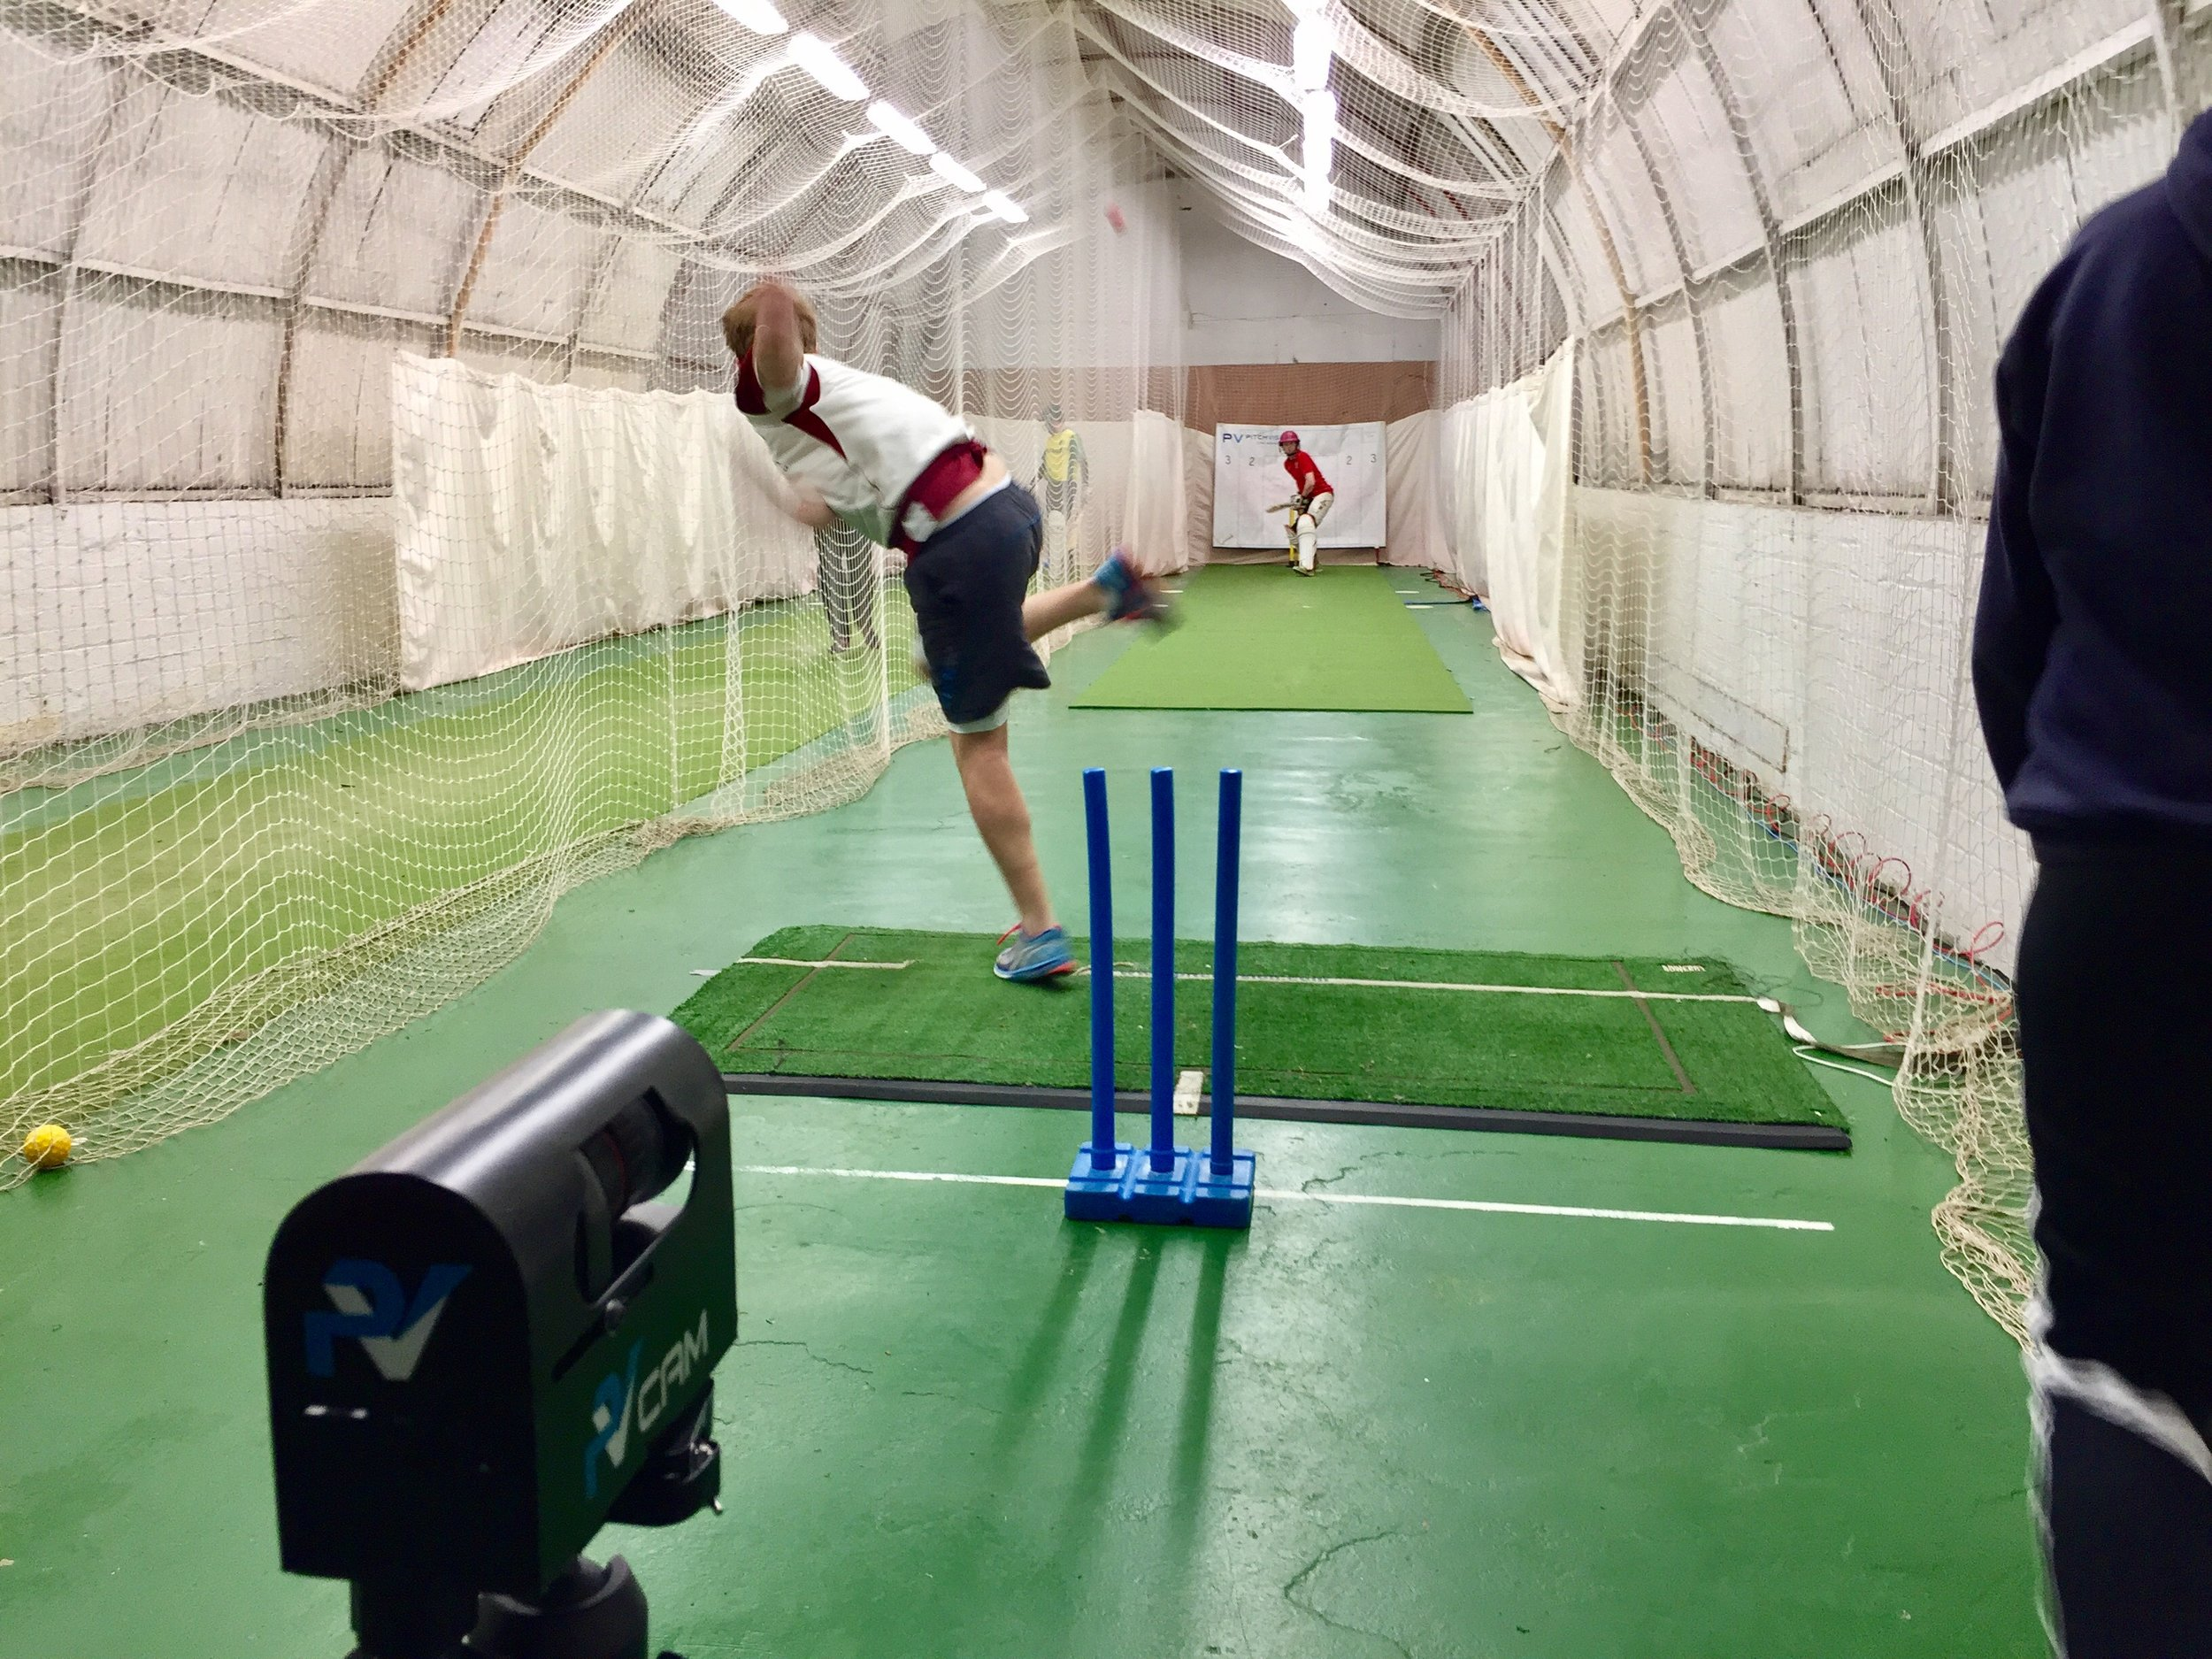 Cricket nets in Glasgow at West of Scotland CC. PitchVision video analysis is seen in action.